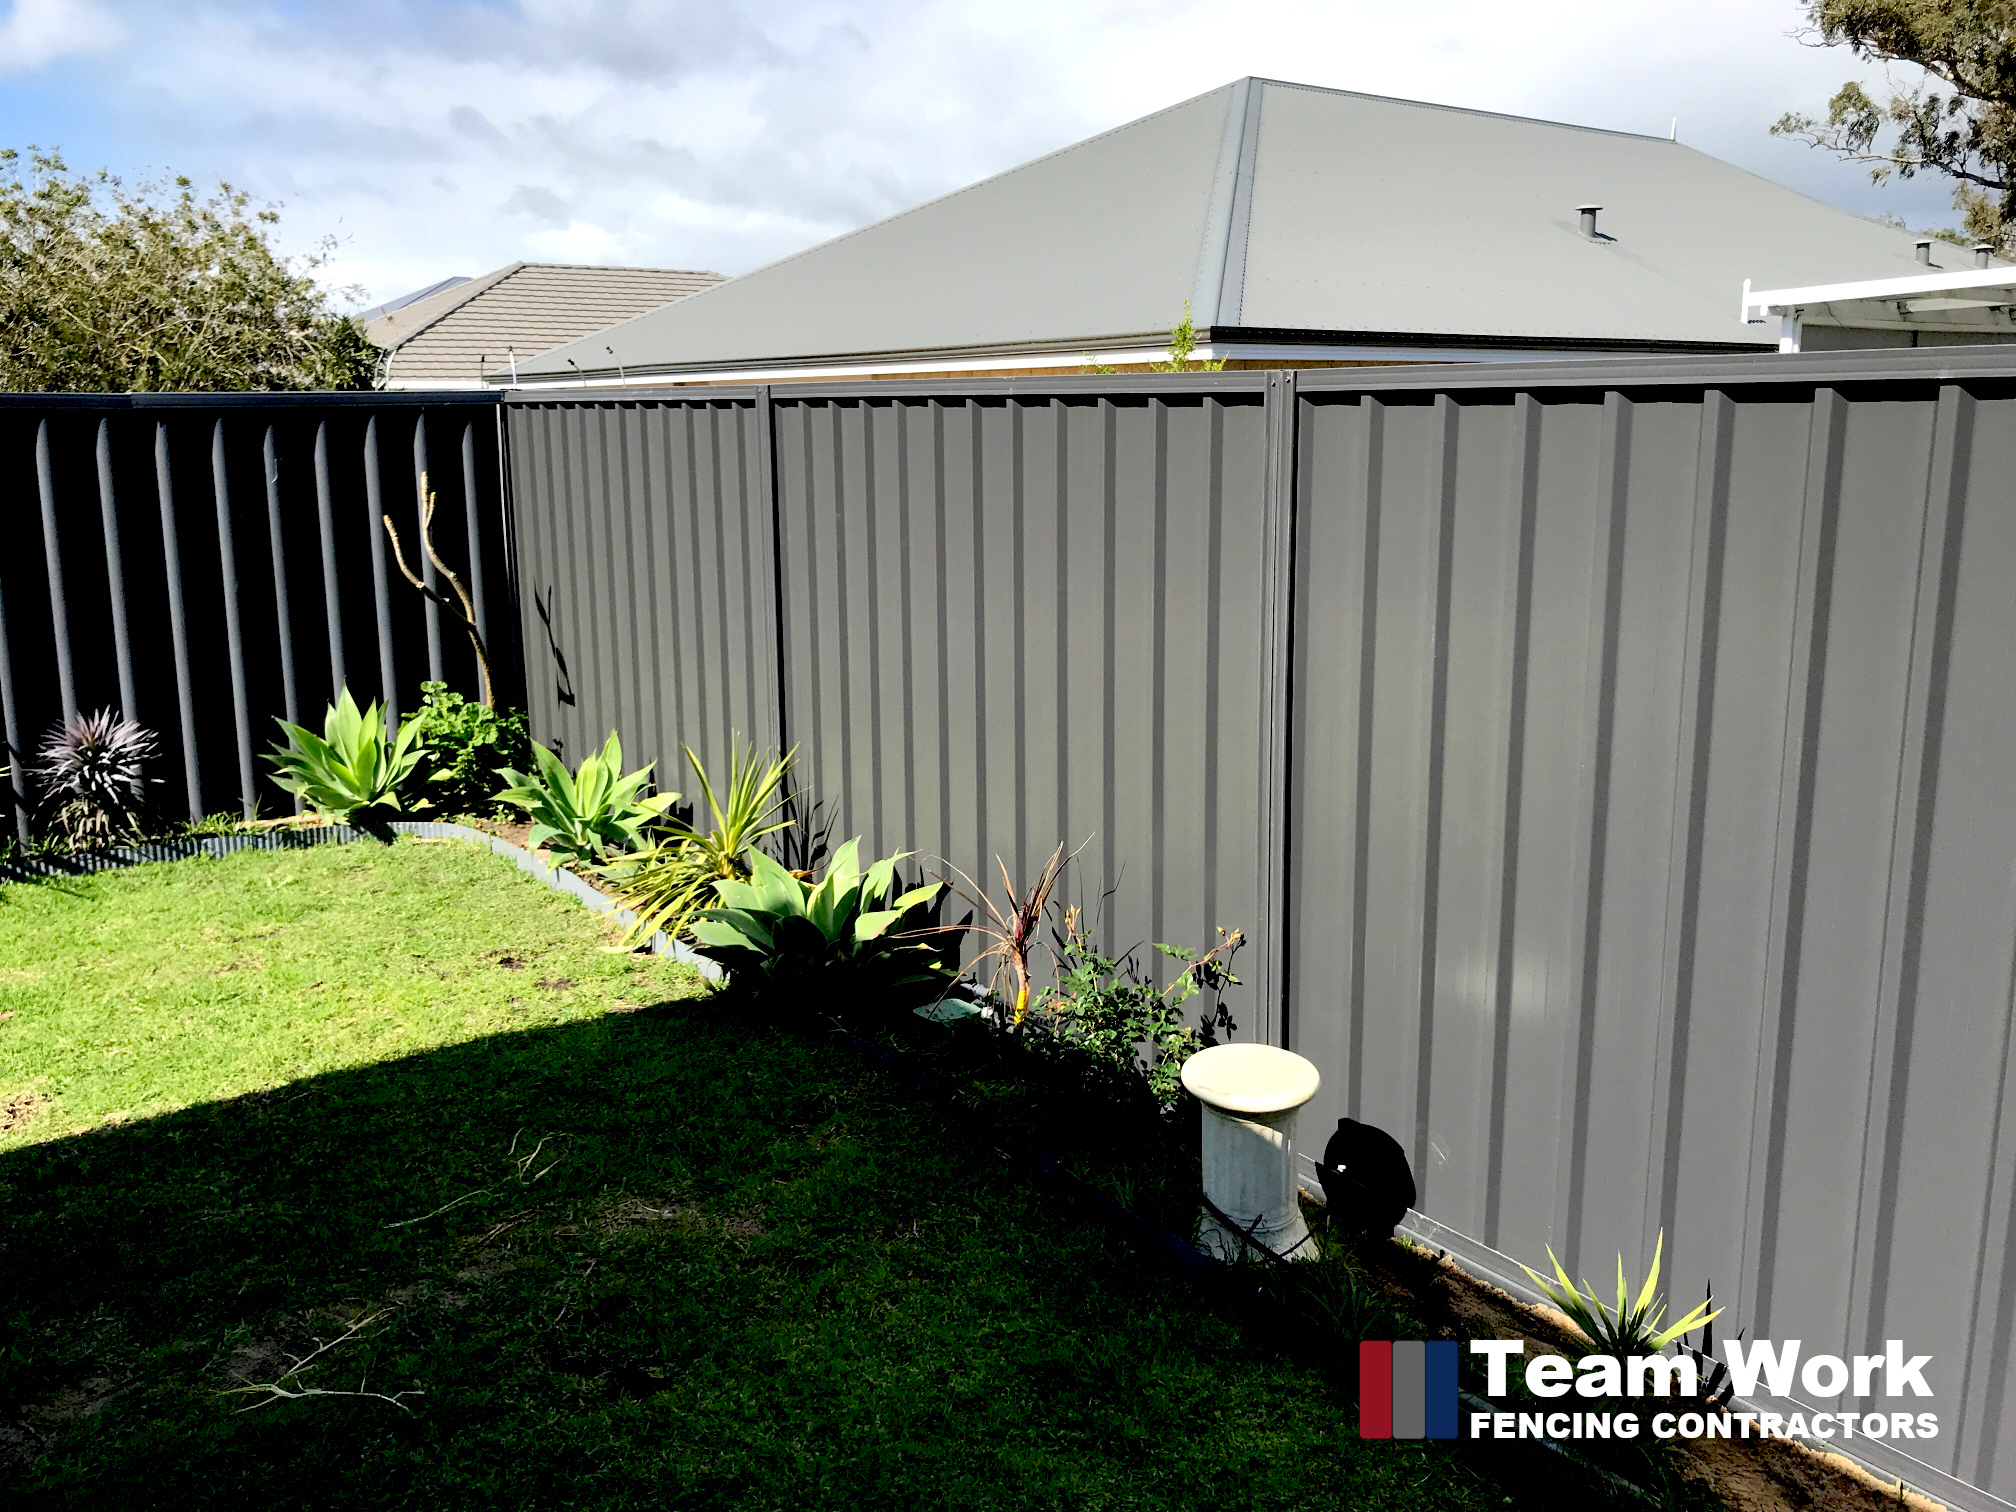 Colorbond Fencing Installation to Replace Storm Damaged Fence in Dalyellup